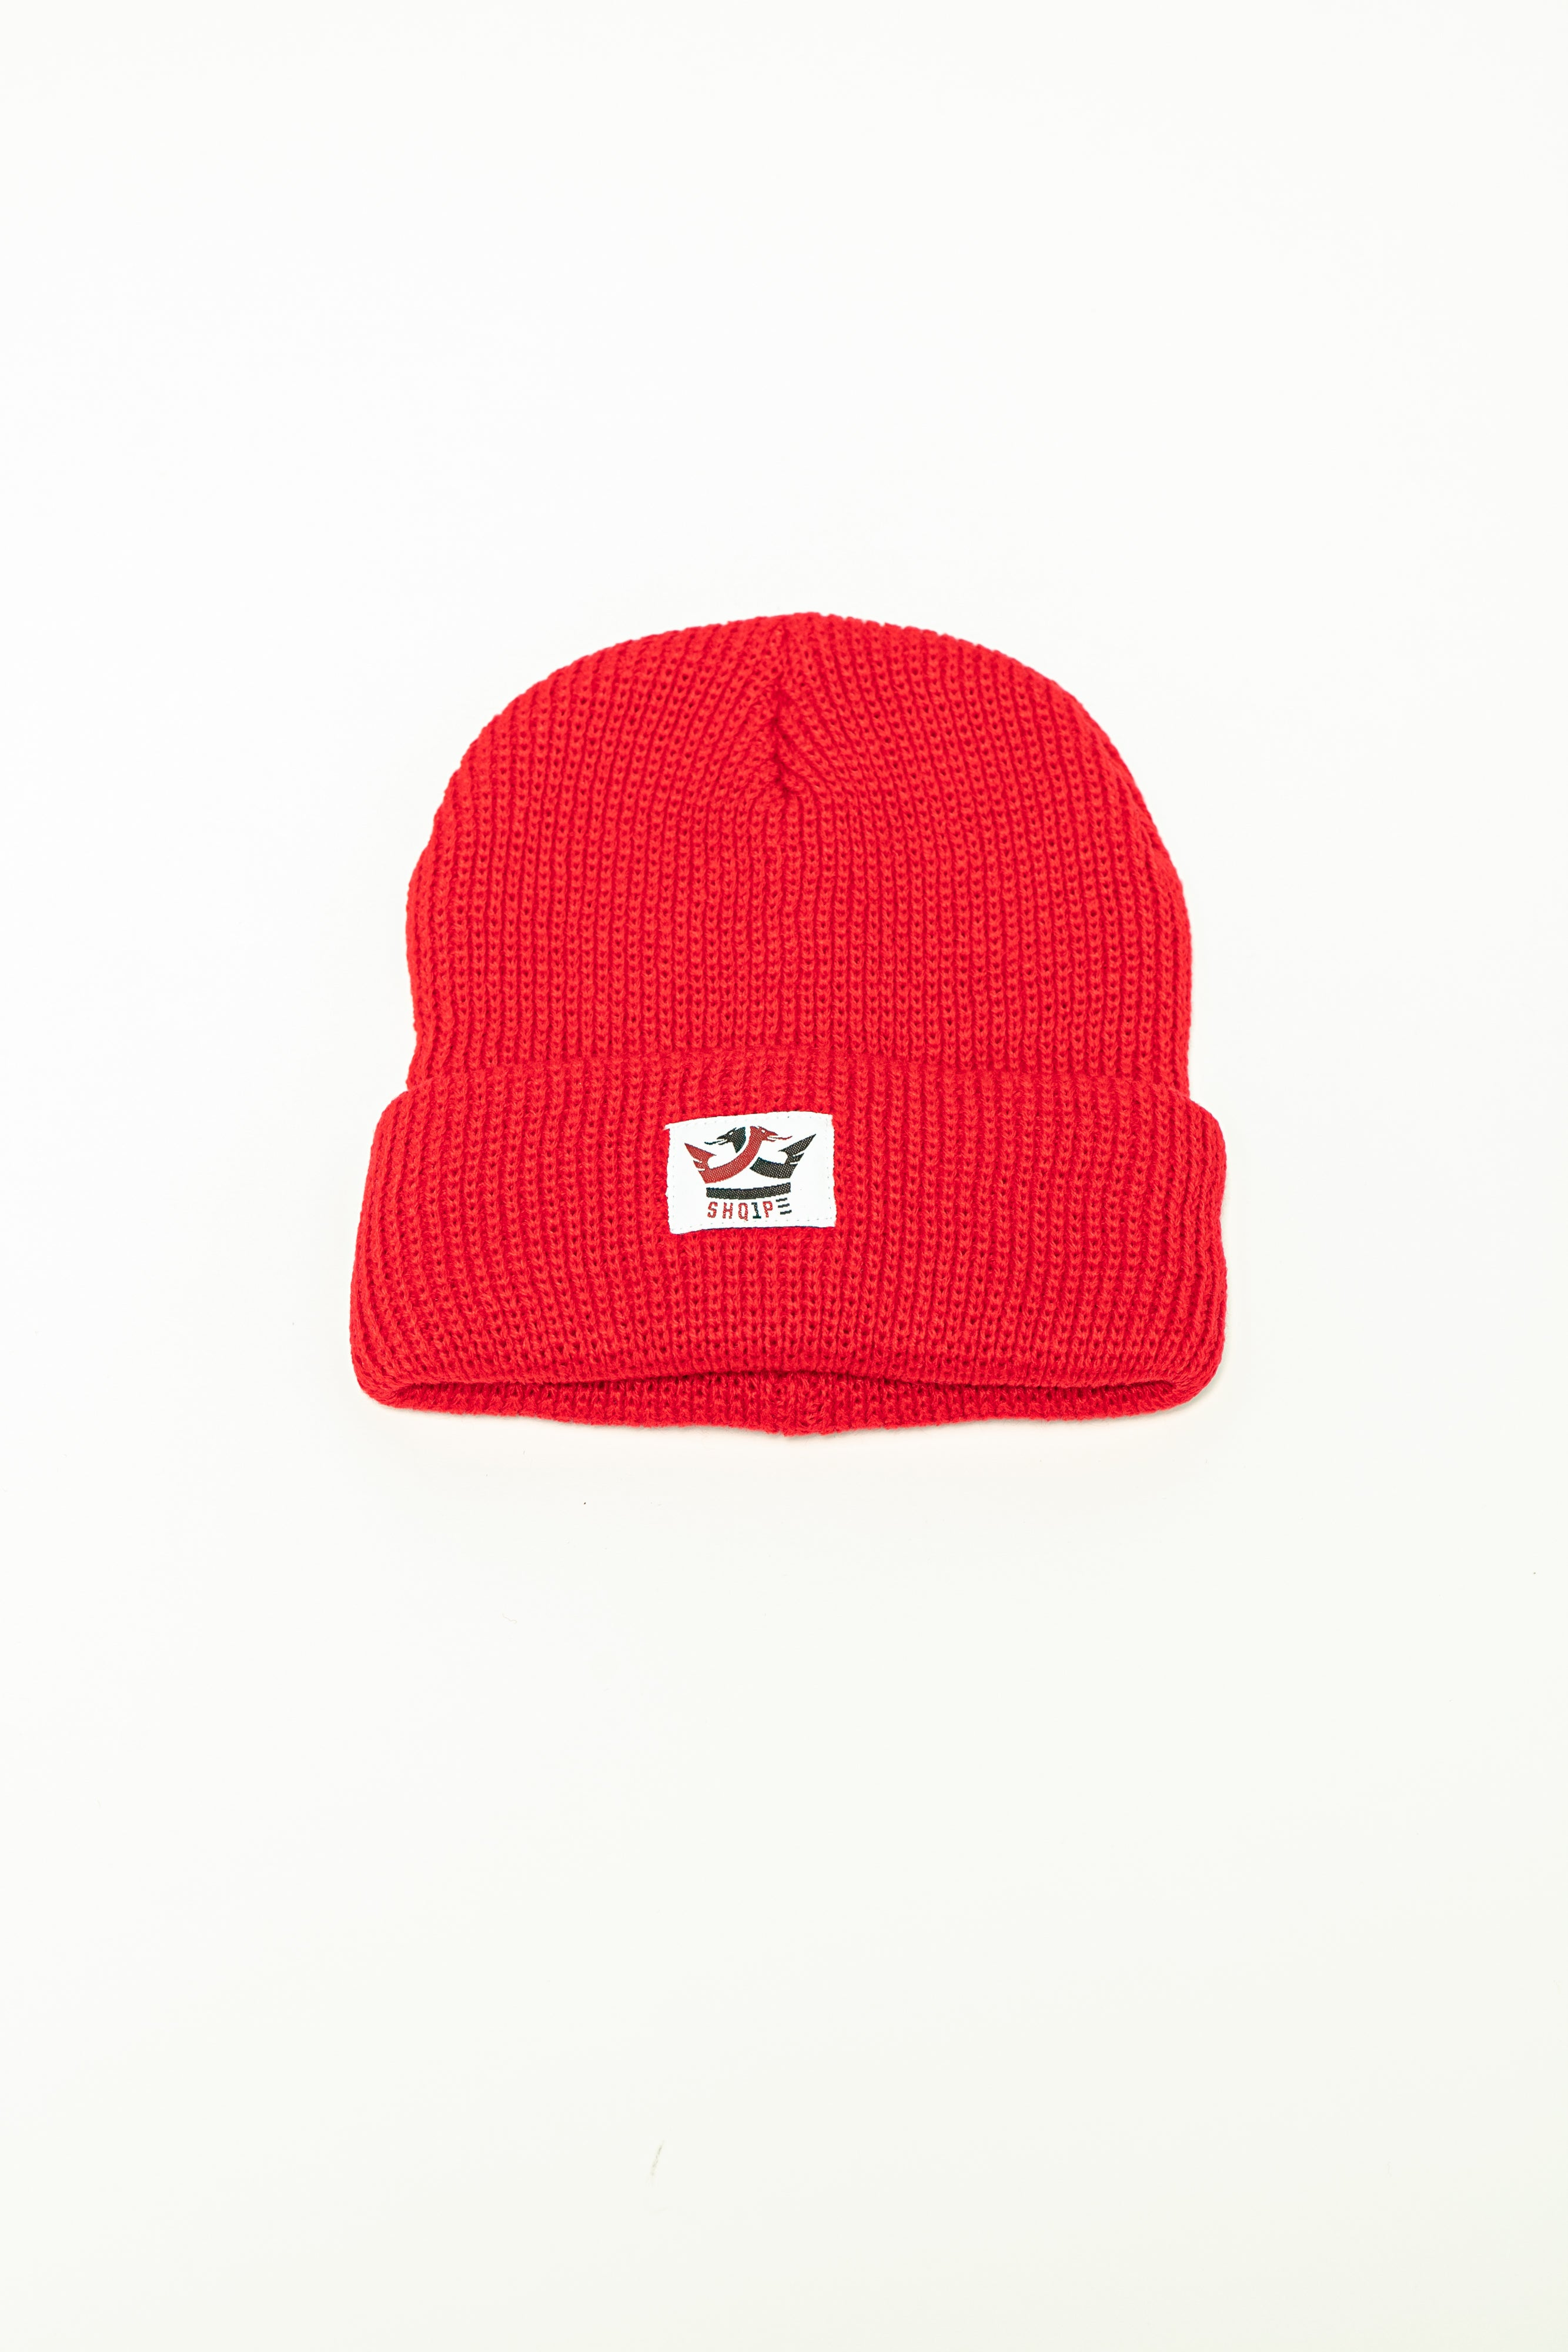 1st Edition Shq1pe Beanie Red